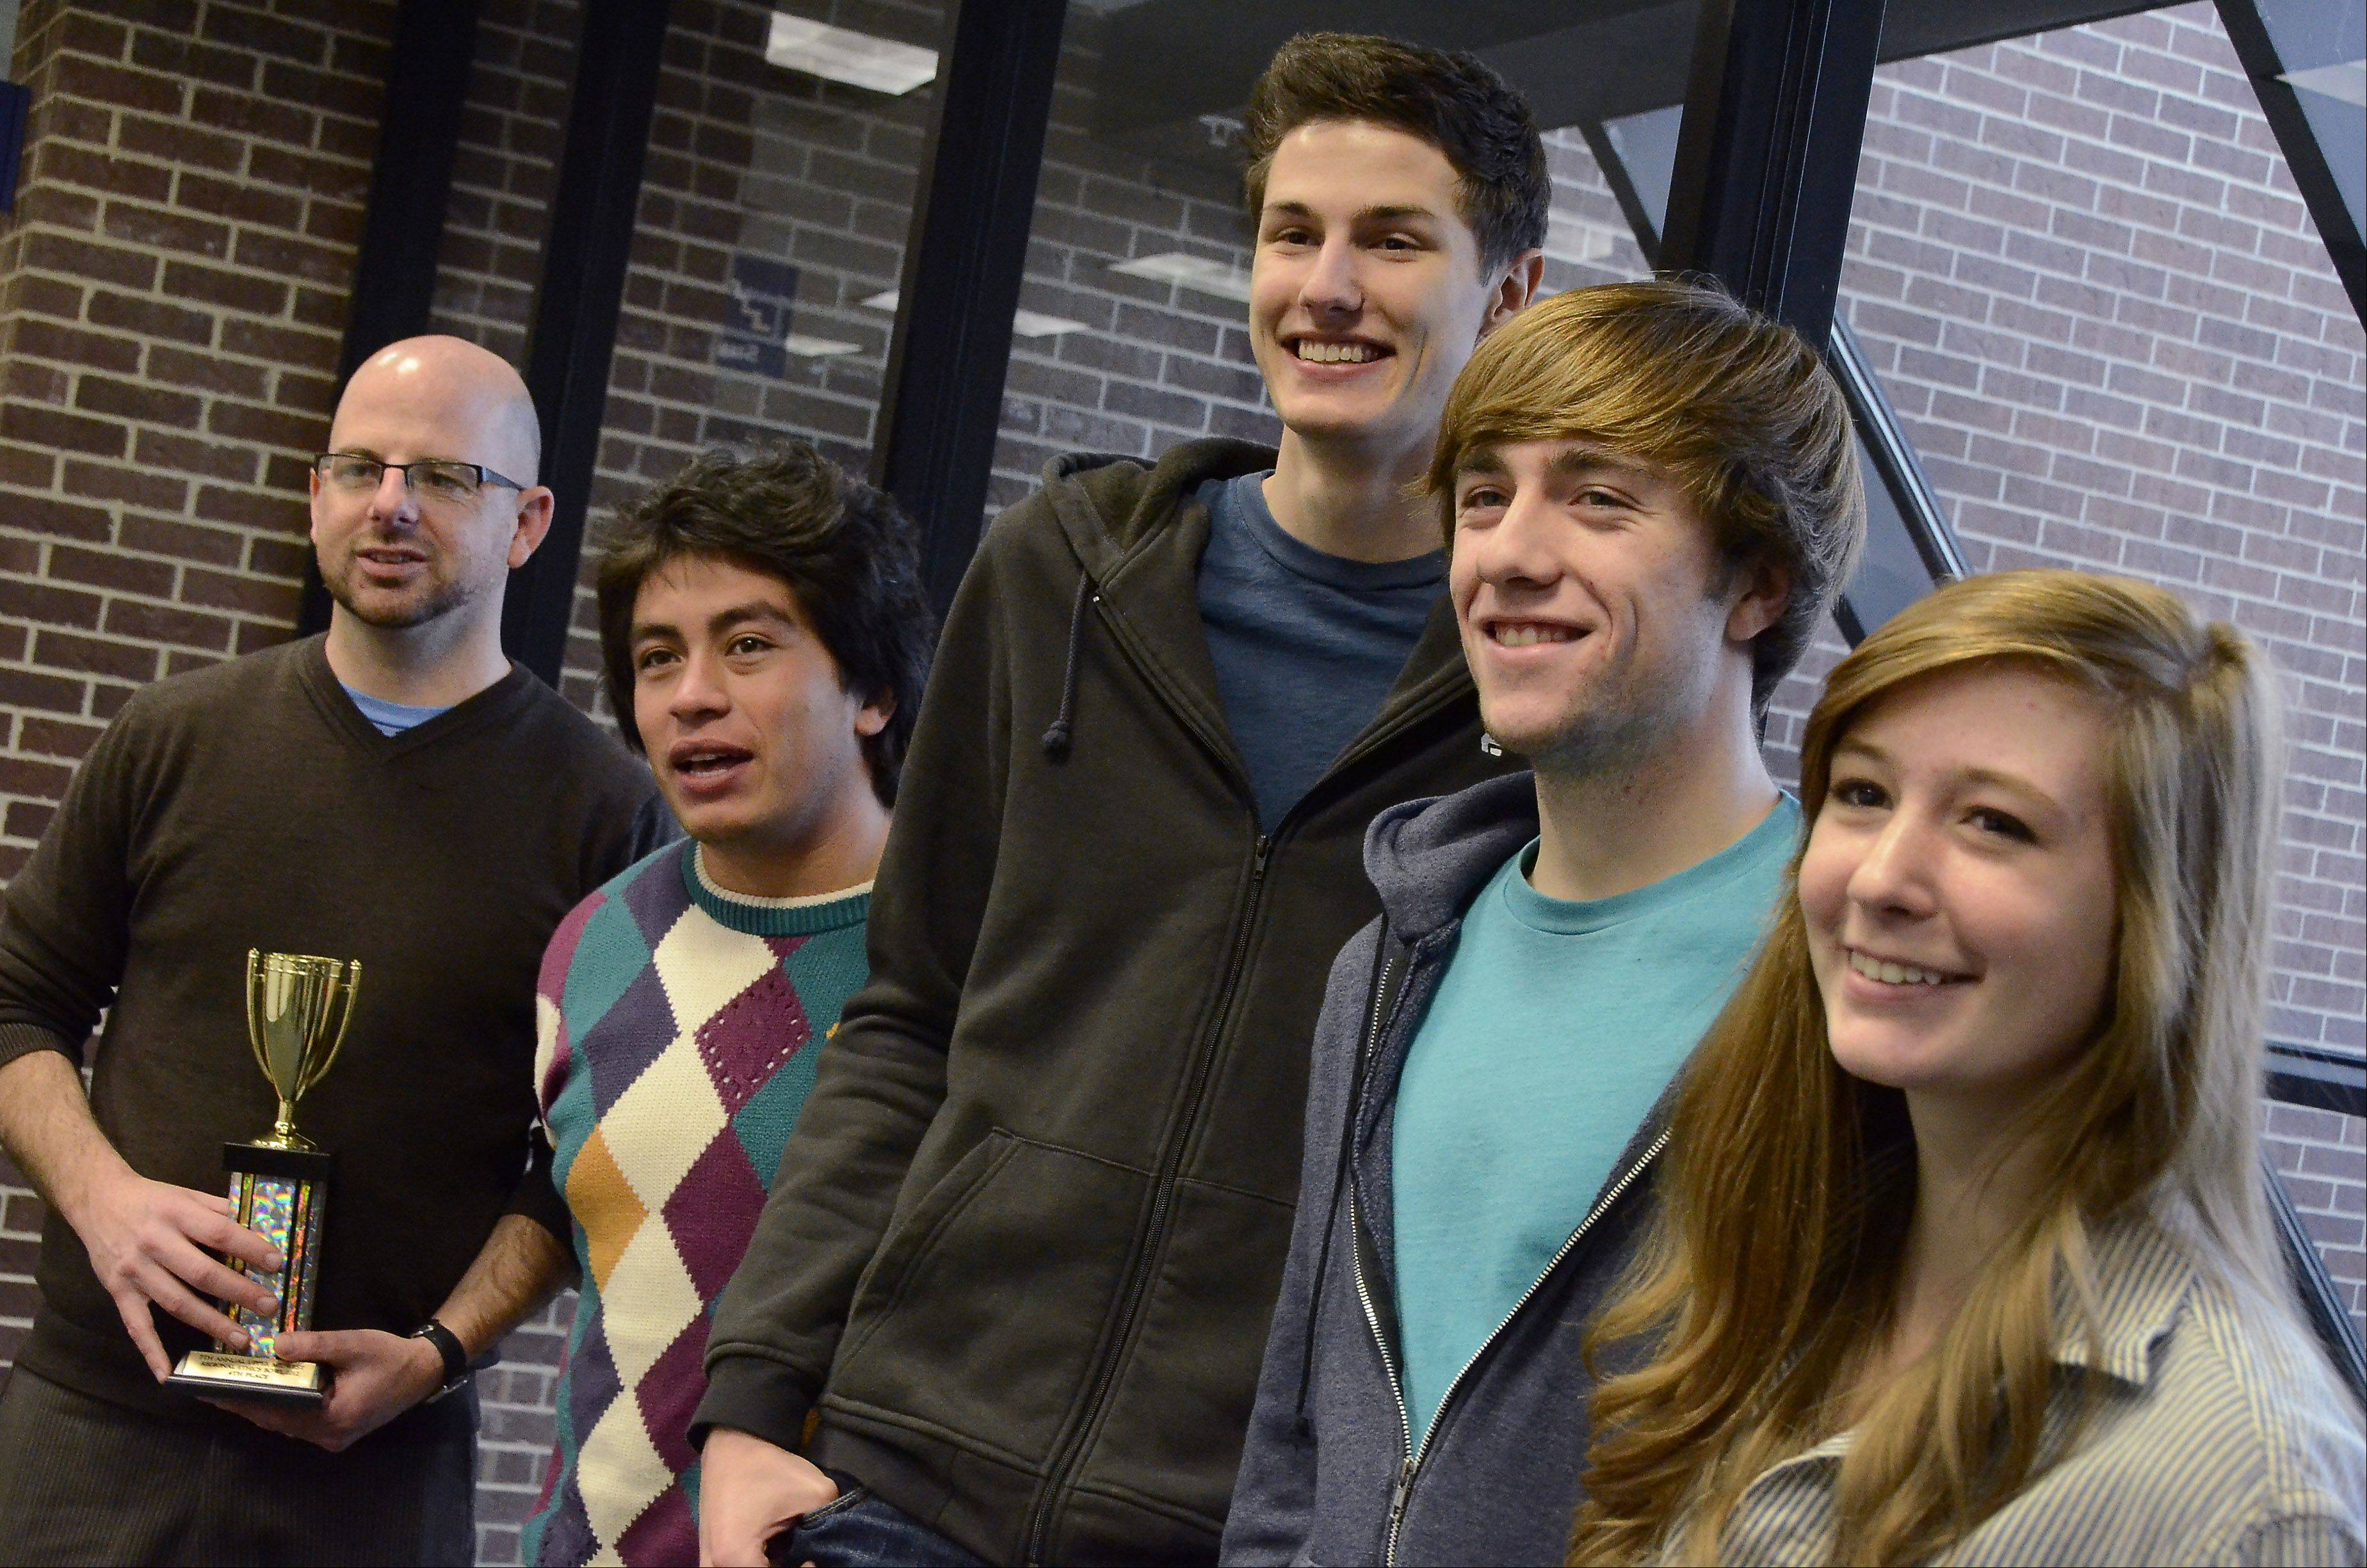 Harper College Ethics Bowl team members from left, Coach John Garcia, Gil Morquecho of Buffalo Grove, Eli Longbottom of Barrington, and Matt Sandel and Caitlin Weres.